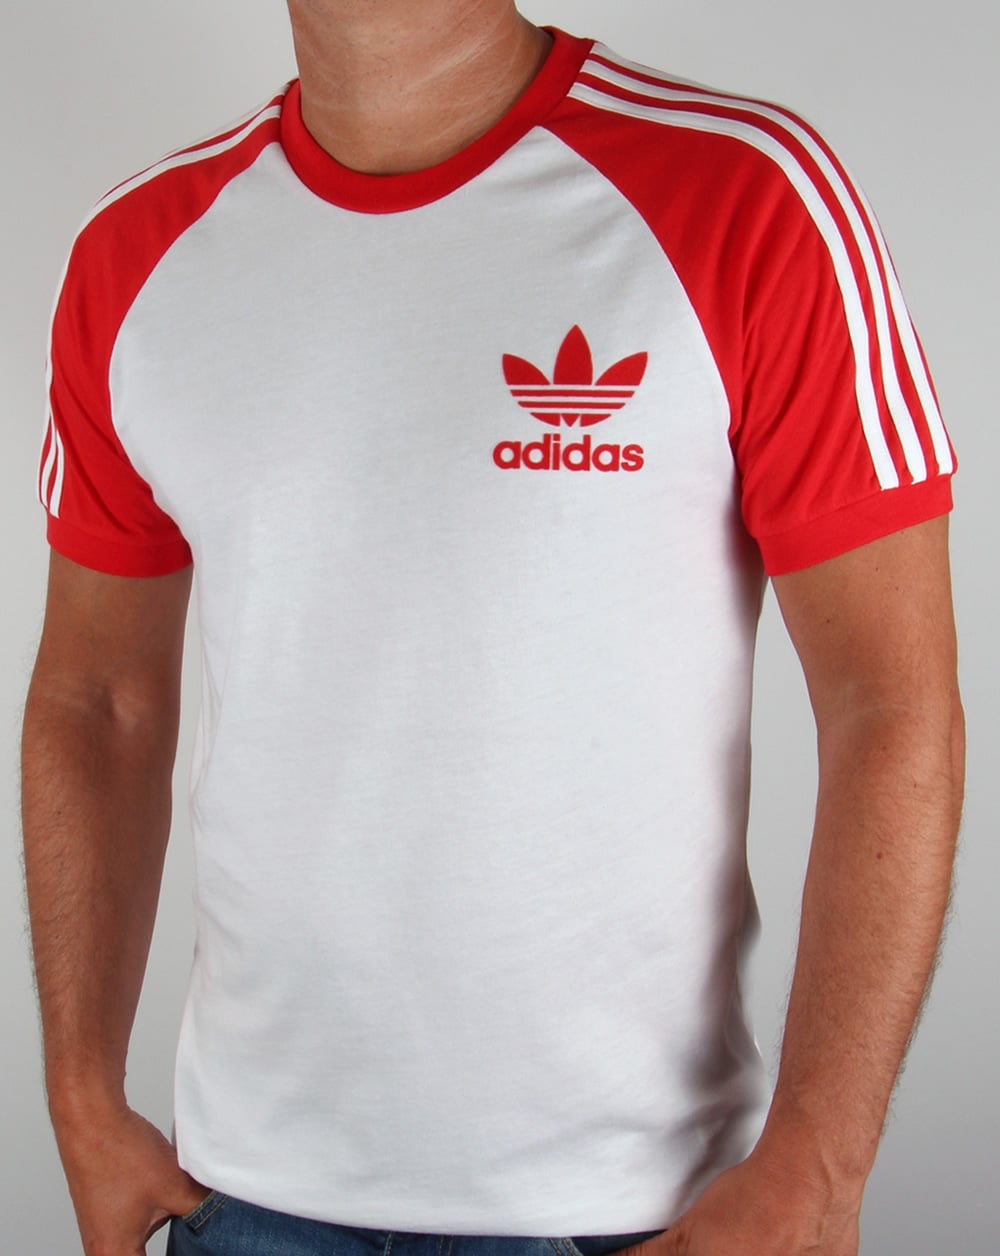 adidas originals retro 3 stripe t shirt white red. Black Bedroom Furniture Sets. Home Design Ideas